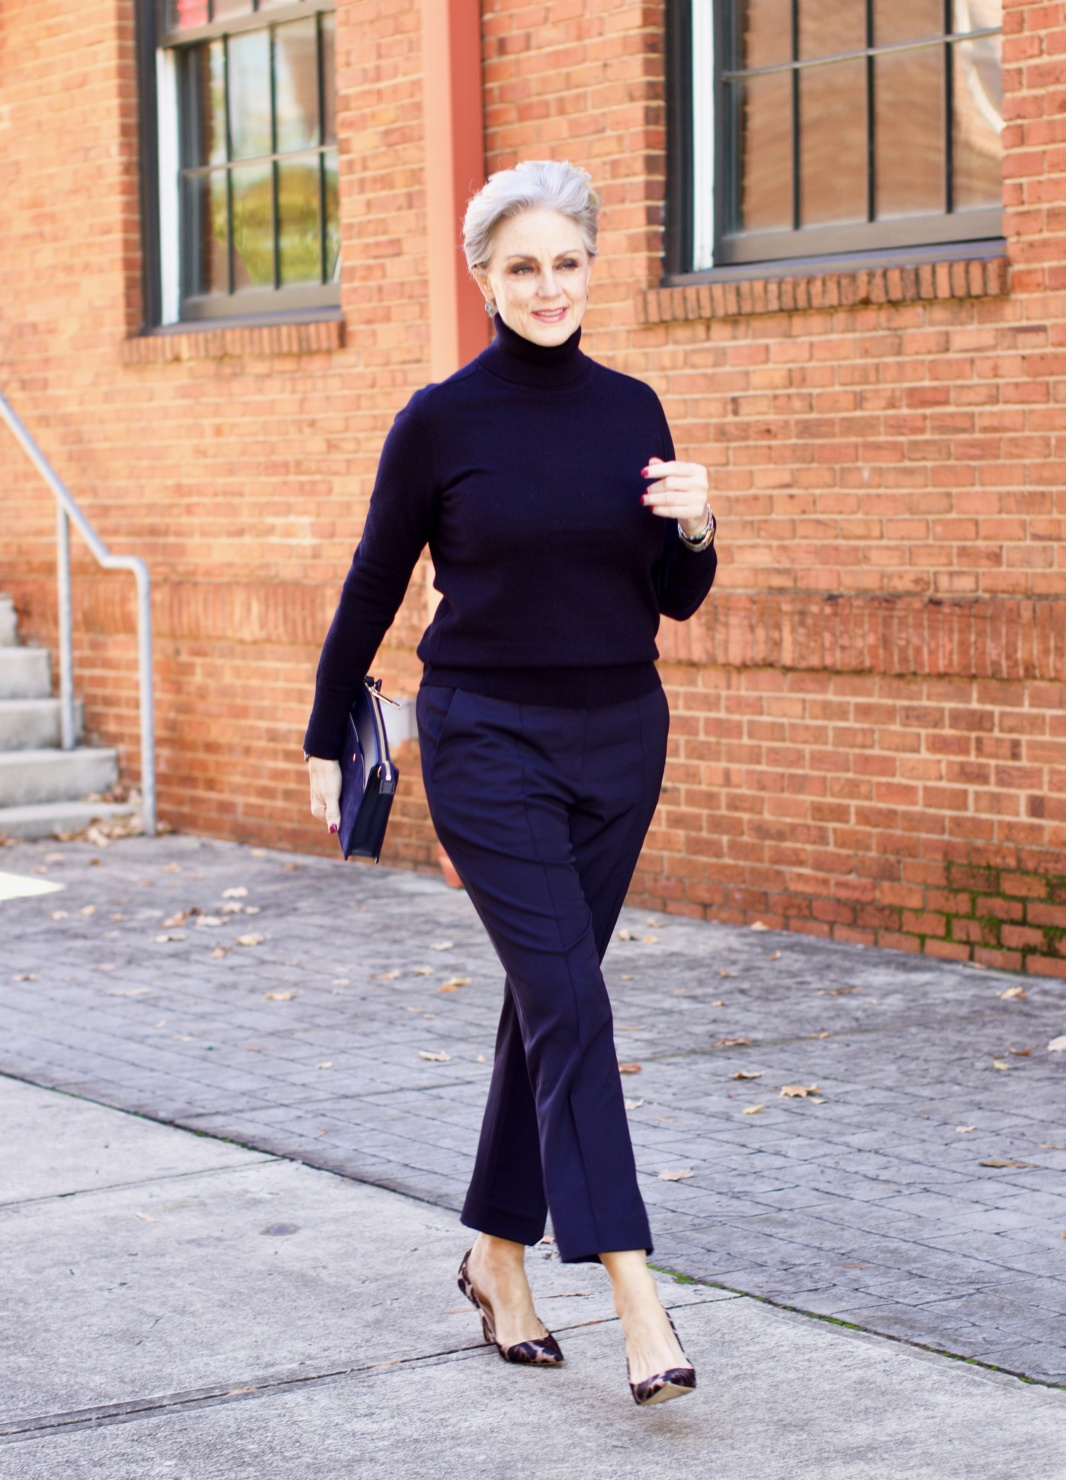 beth from Style at a Certain Age wears an Everlane cashmere turtleneck, Italian weave ankle pants, leopard pumps, and Talbots green overcoat